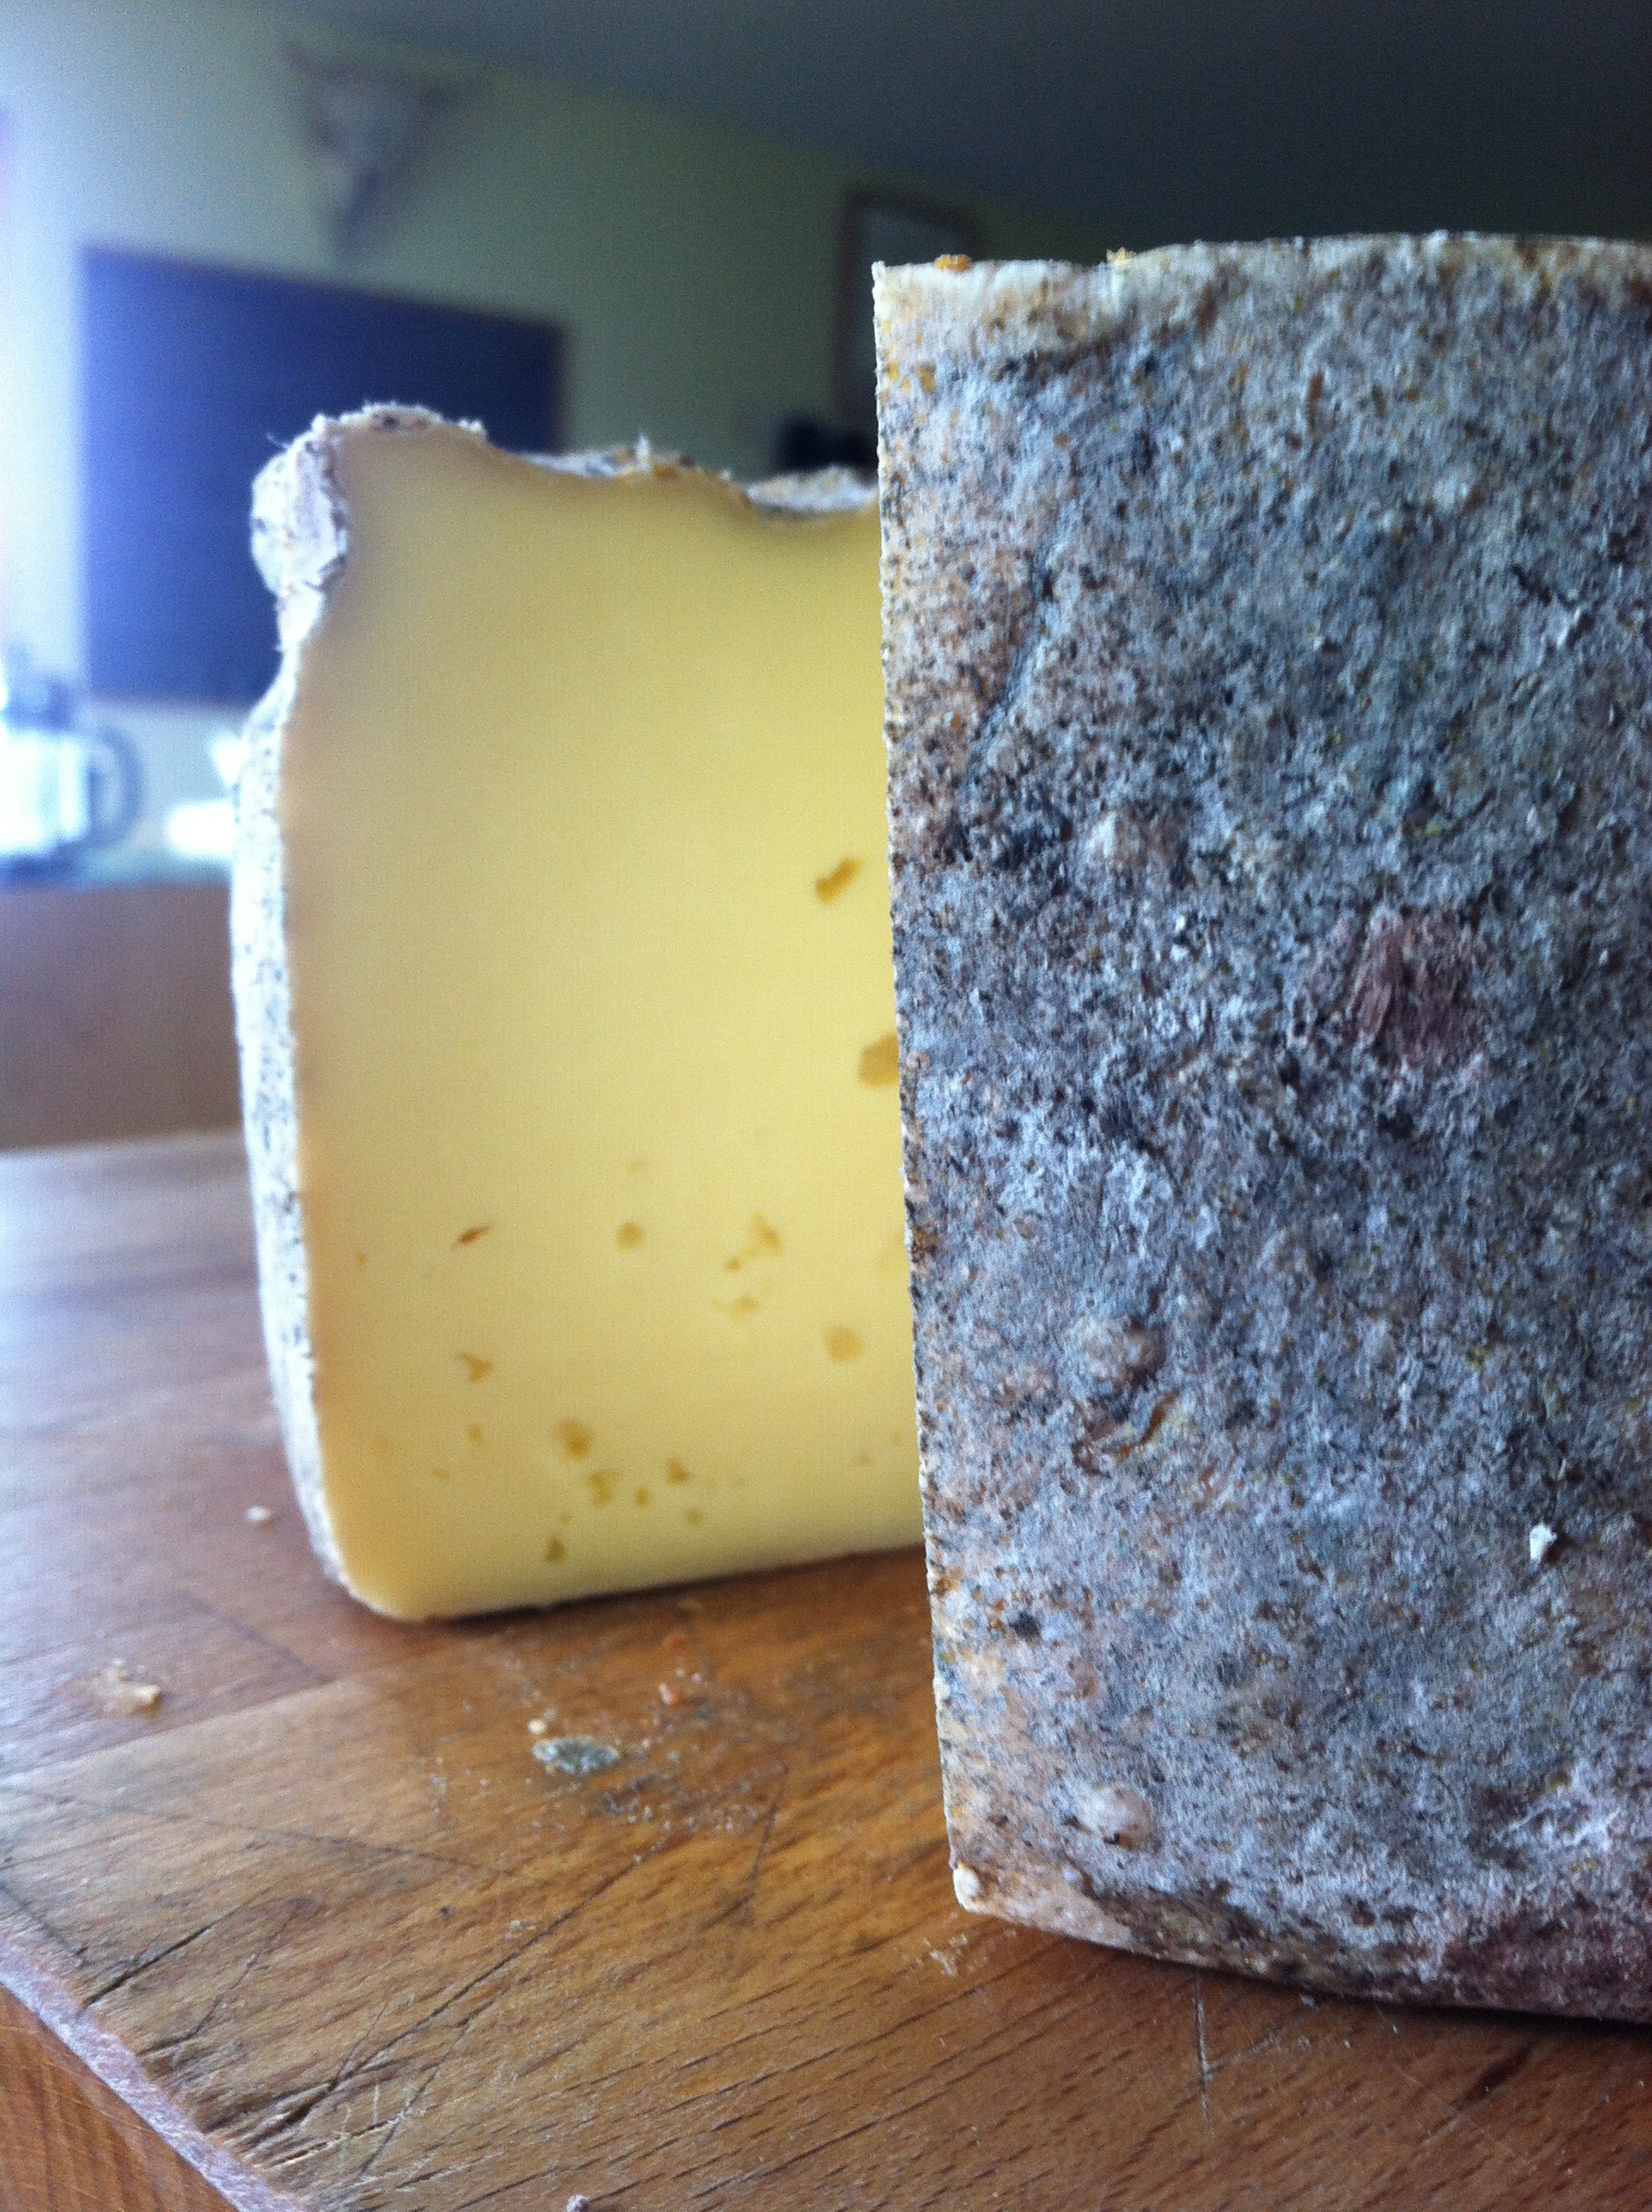 and we are feasting on yummy cheese from our farm while we wait for the veggies to grow!